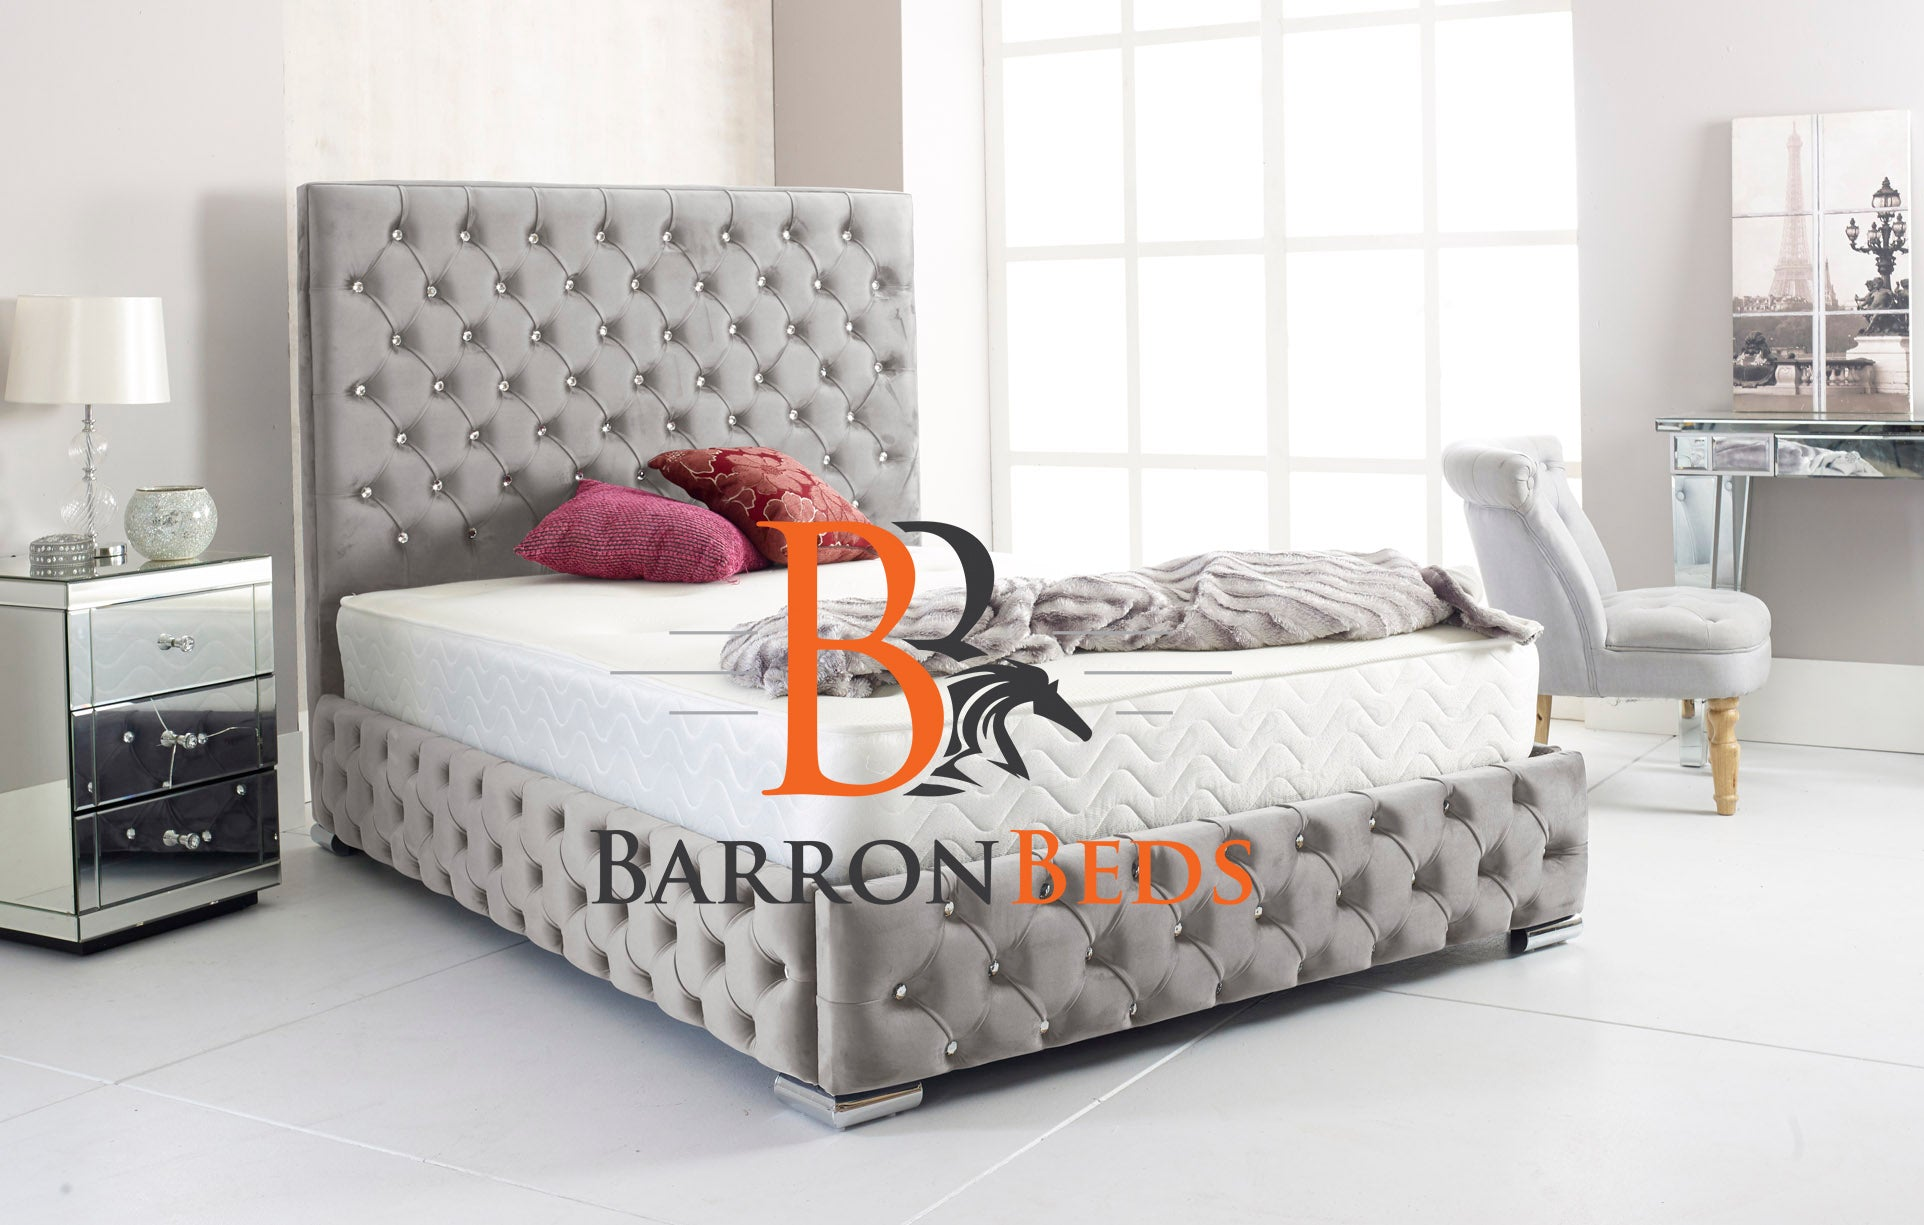 Venice Chesterfield Bed Frame Part of the Barronbeds Bespoke Range